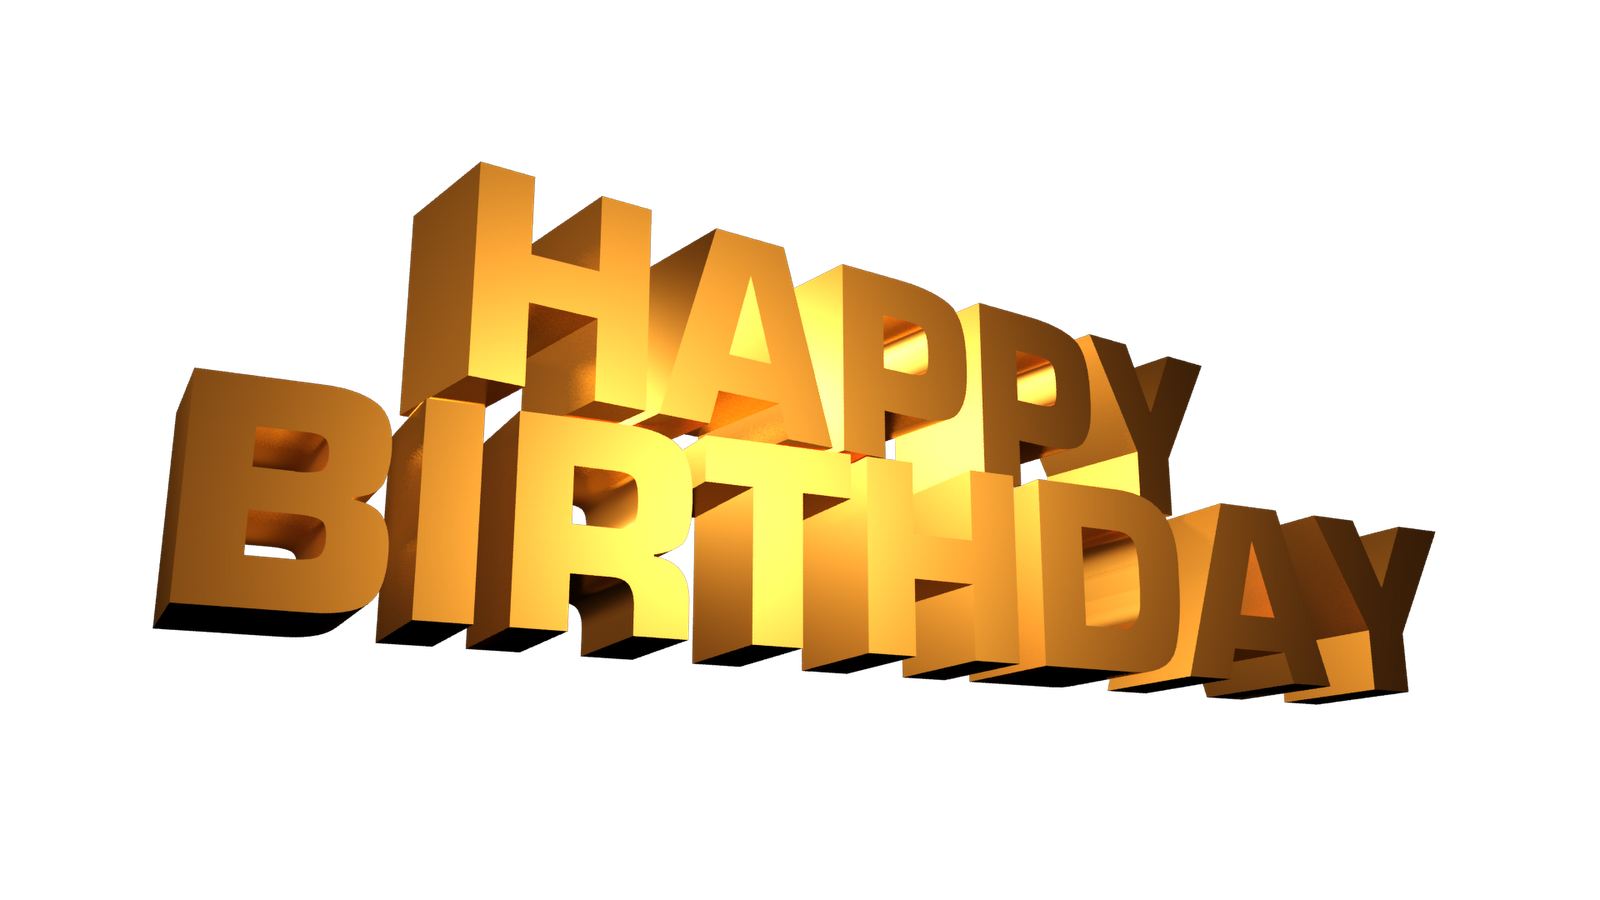 Happy Birthday Png - Happy Birthday PNG Free Download